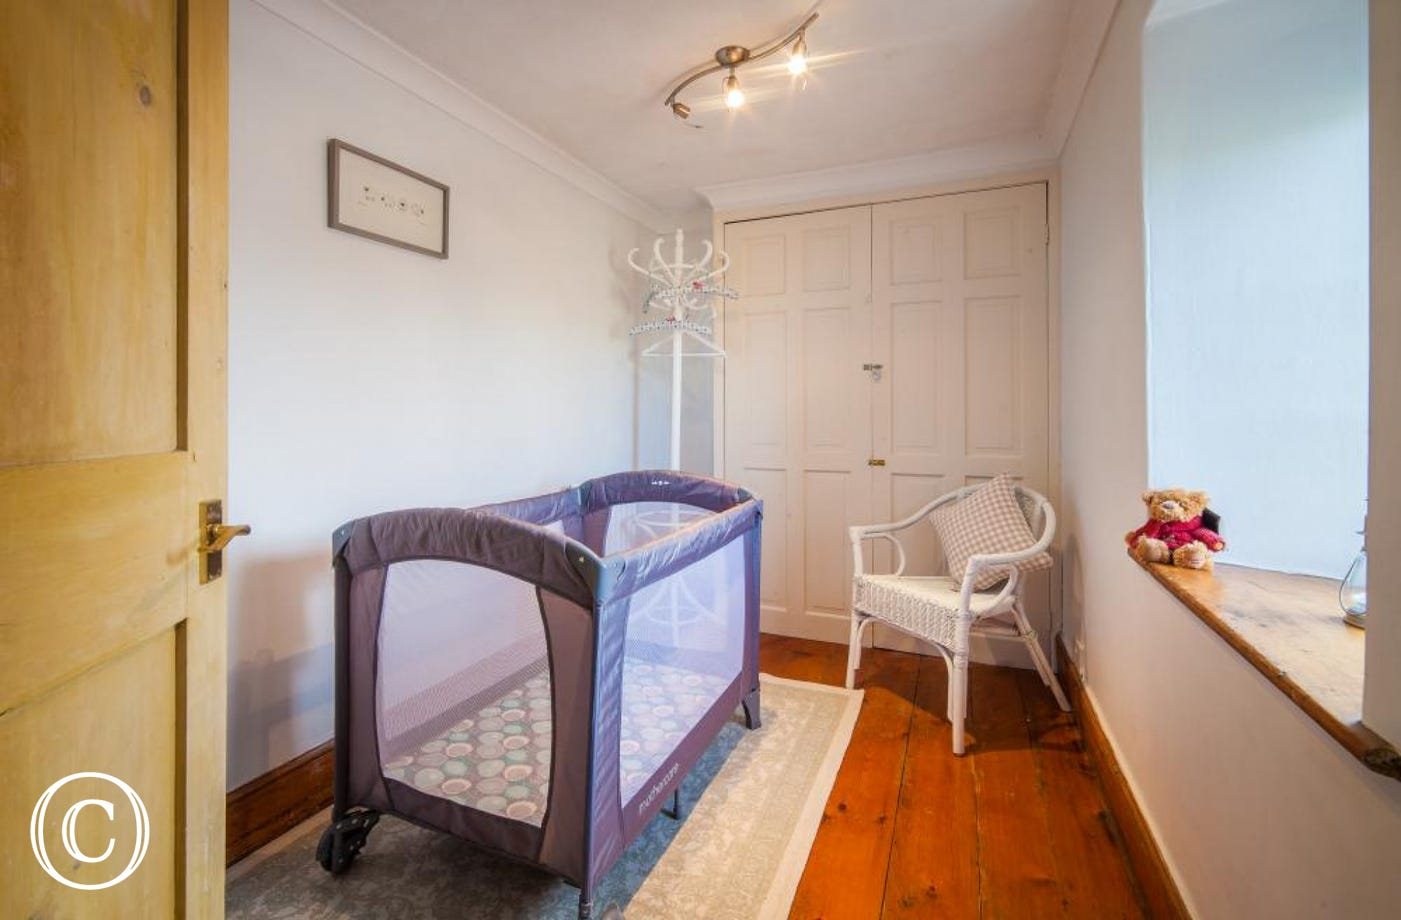 second bedroom for travel cot, perfect for babies. Travel cot and highchair provided